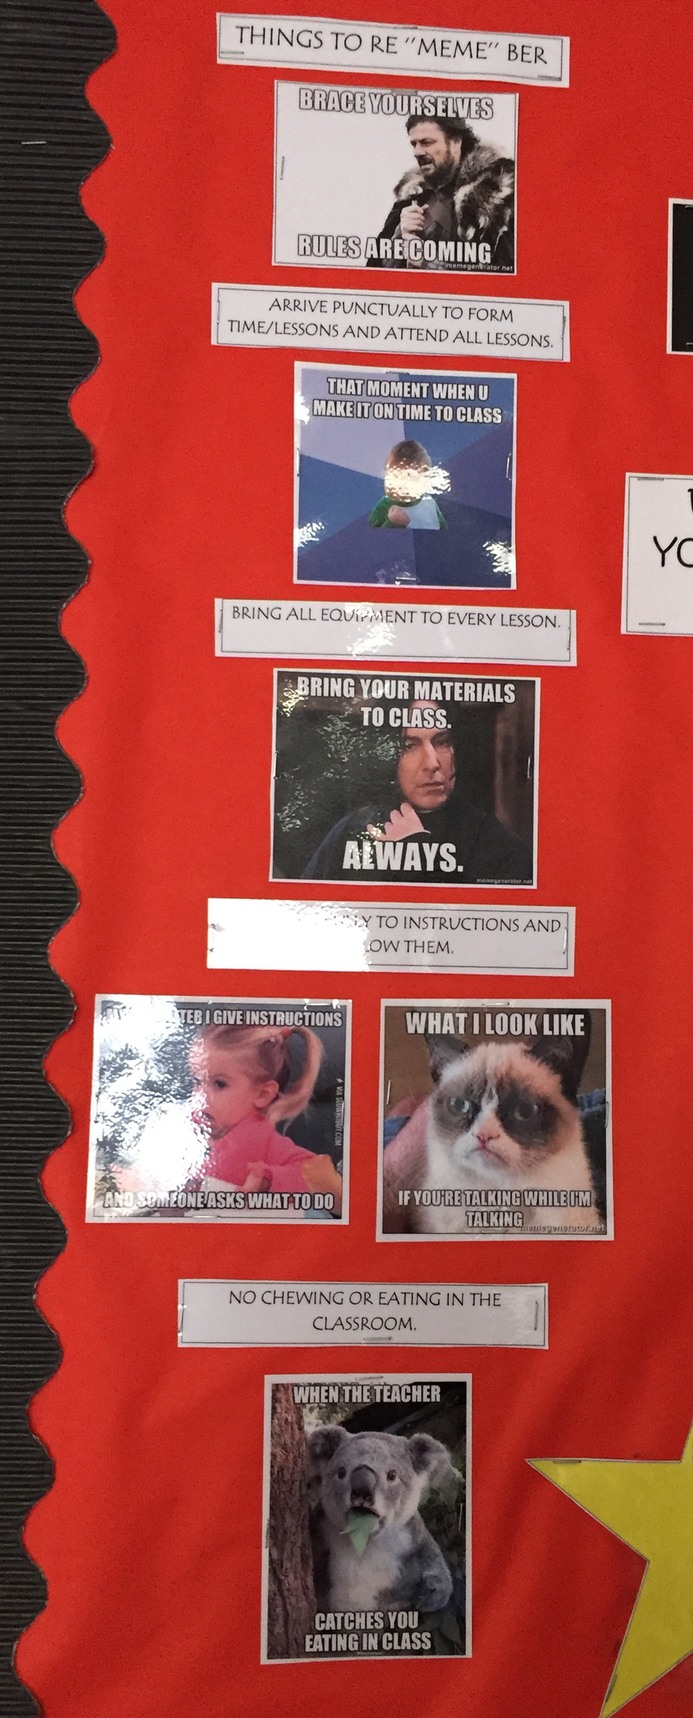 Found this shit in my school... - meme